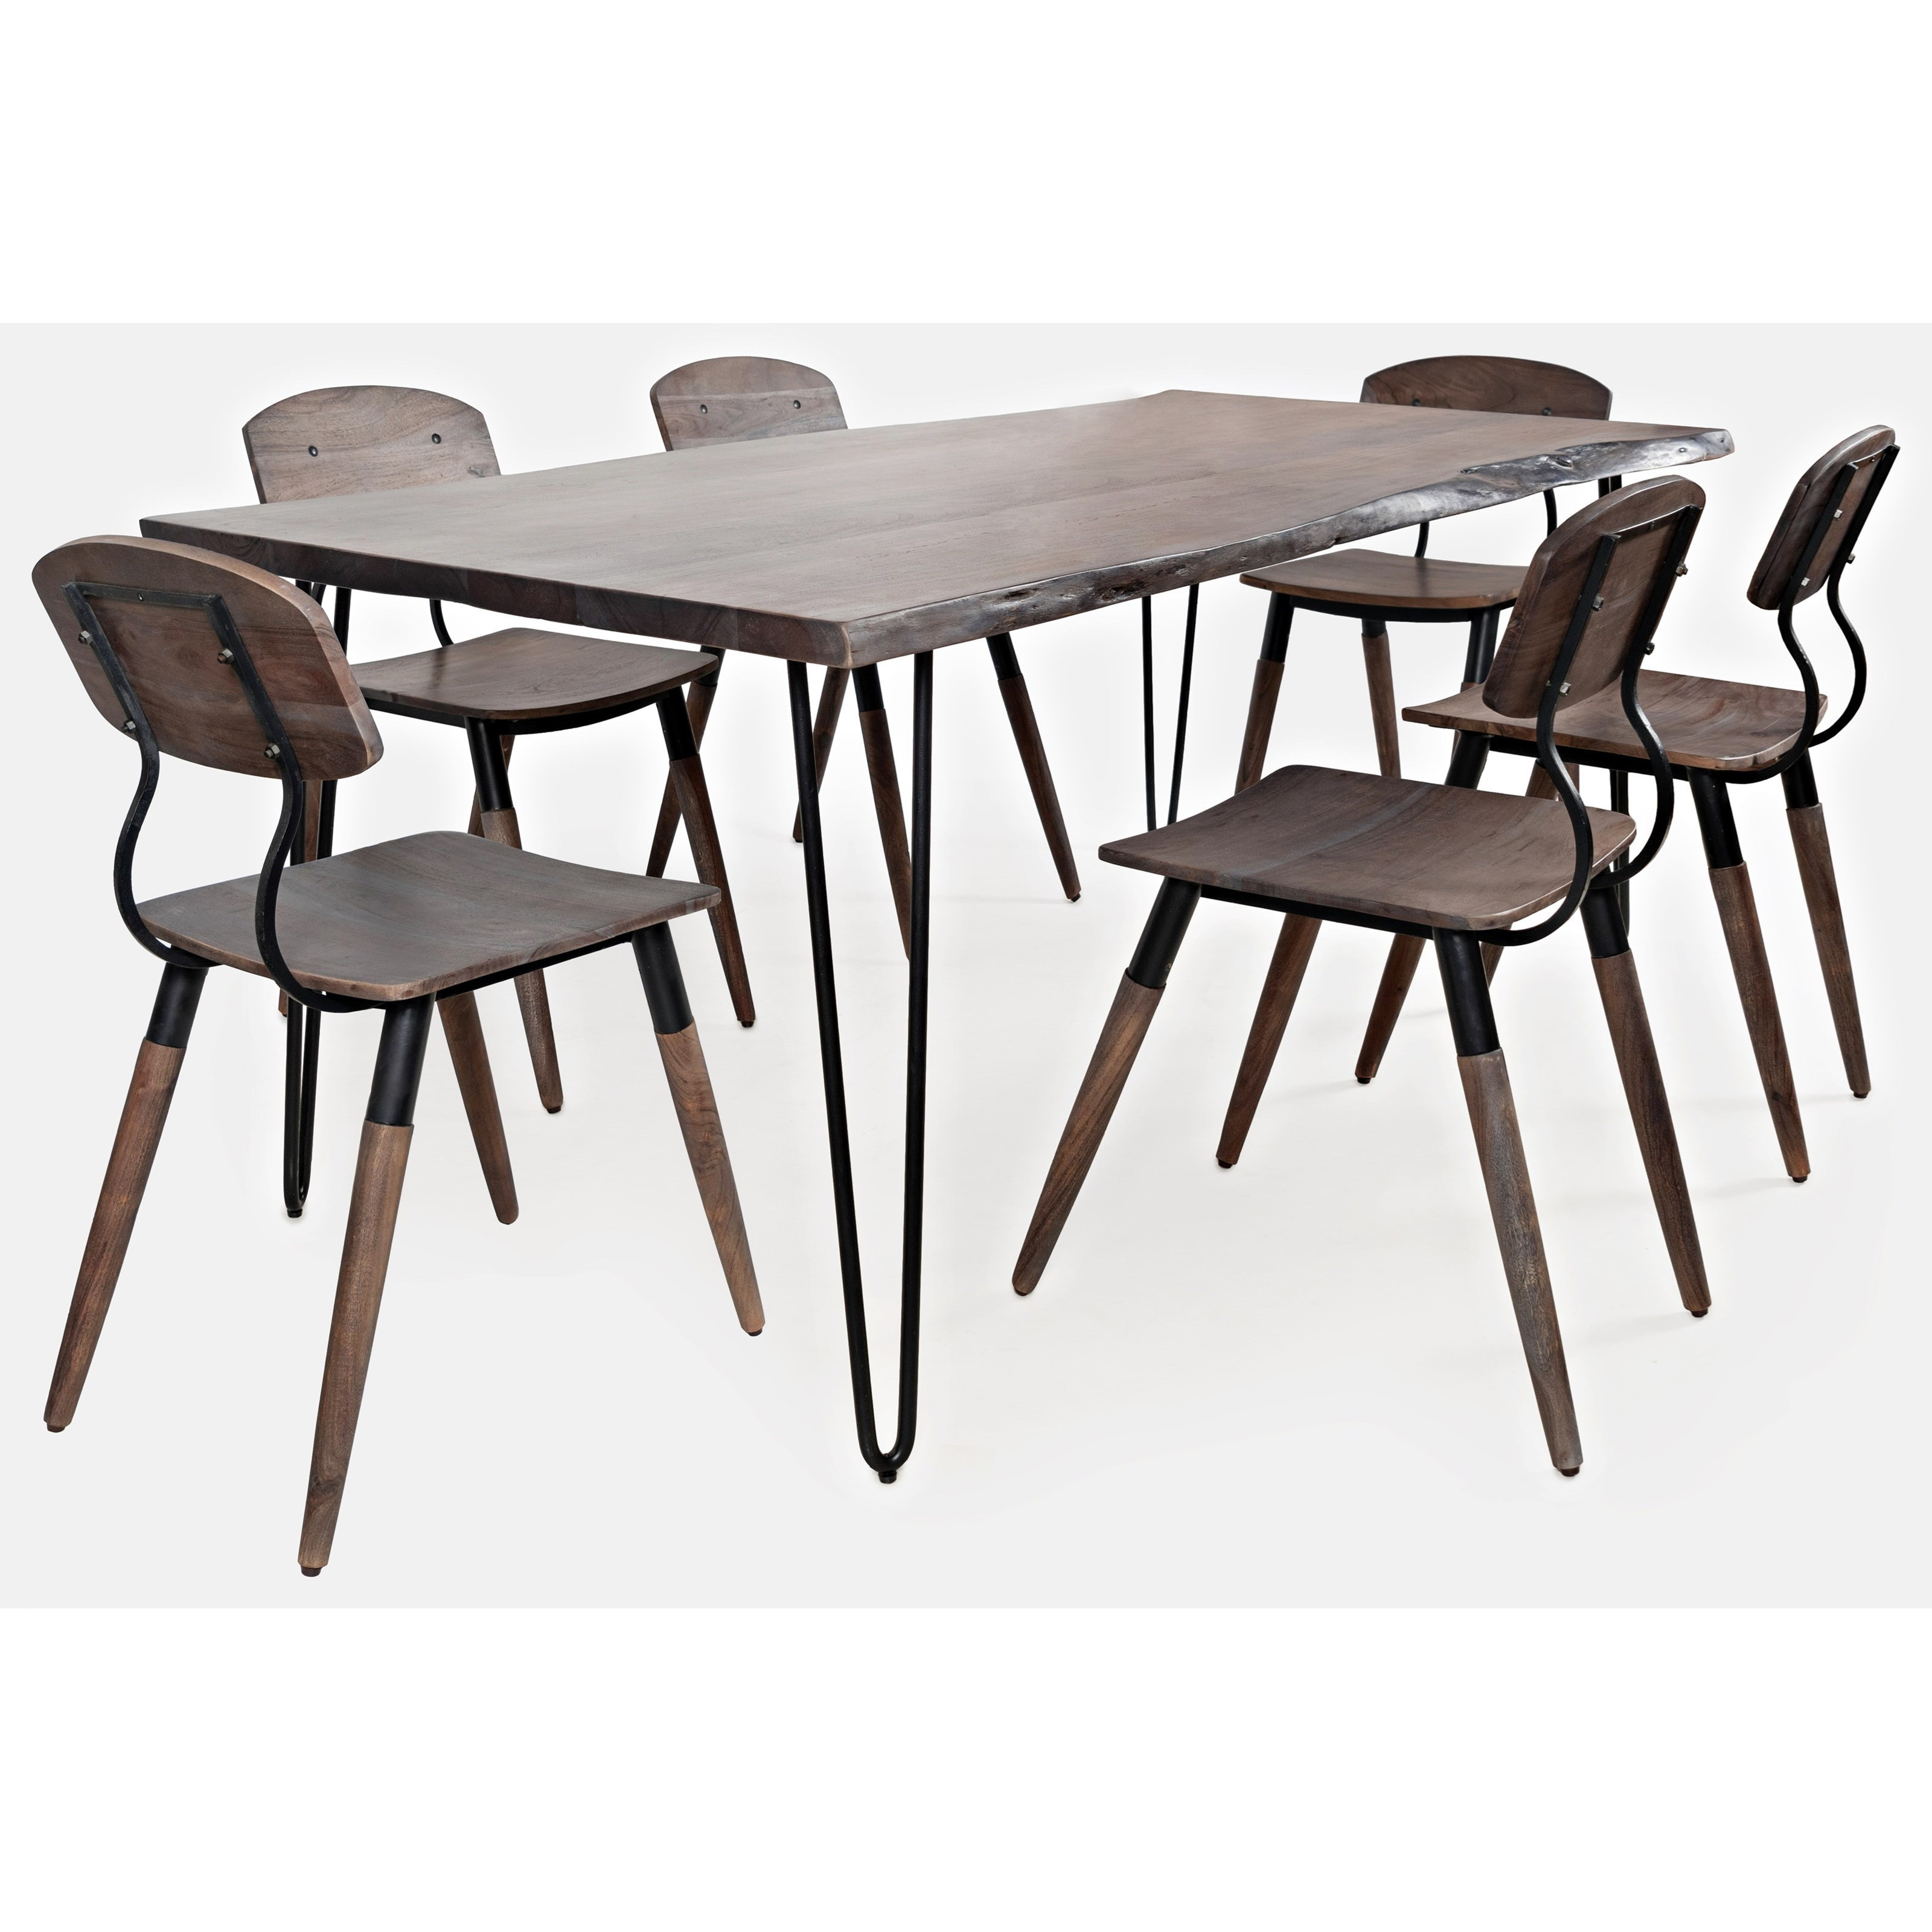 Nature's Edge 7-Piece Table and Chair Set by Jofran at H.L. Stephens